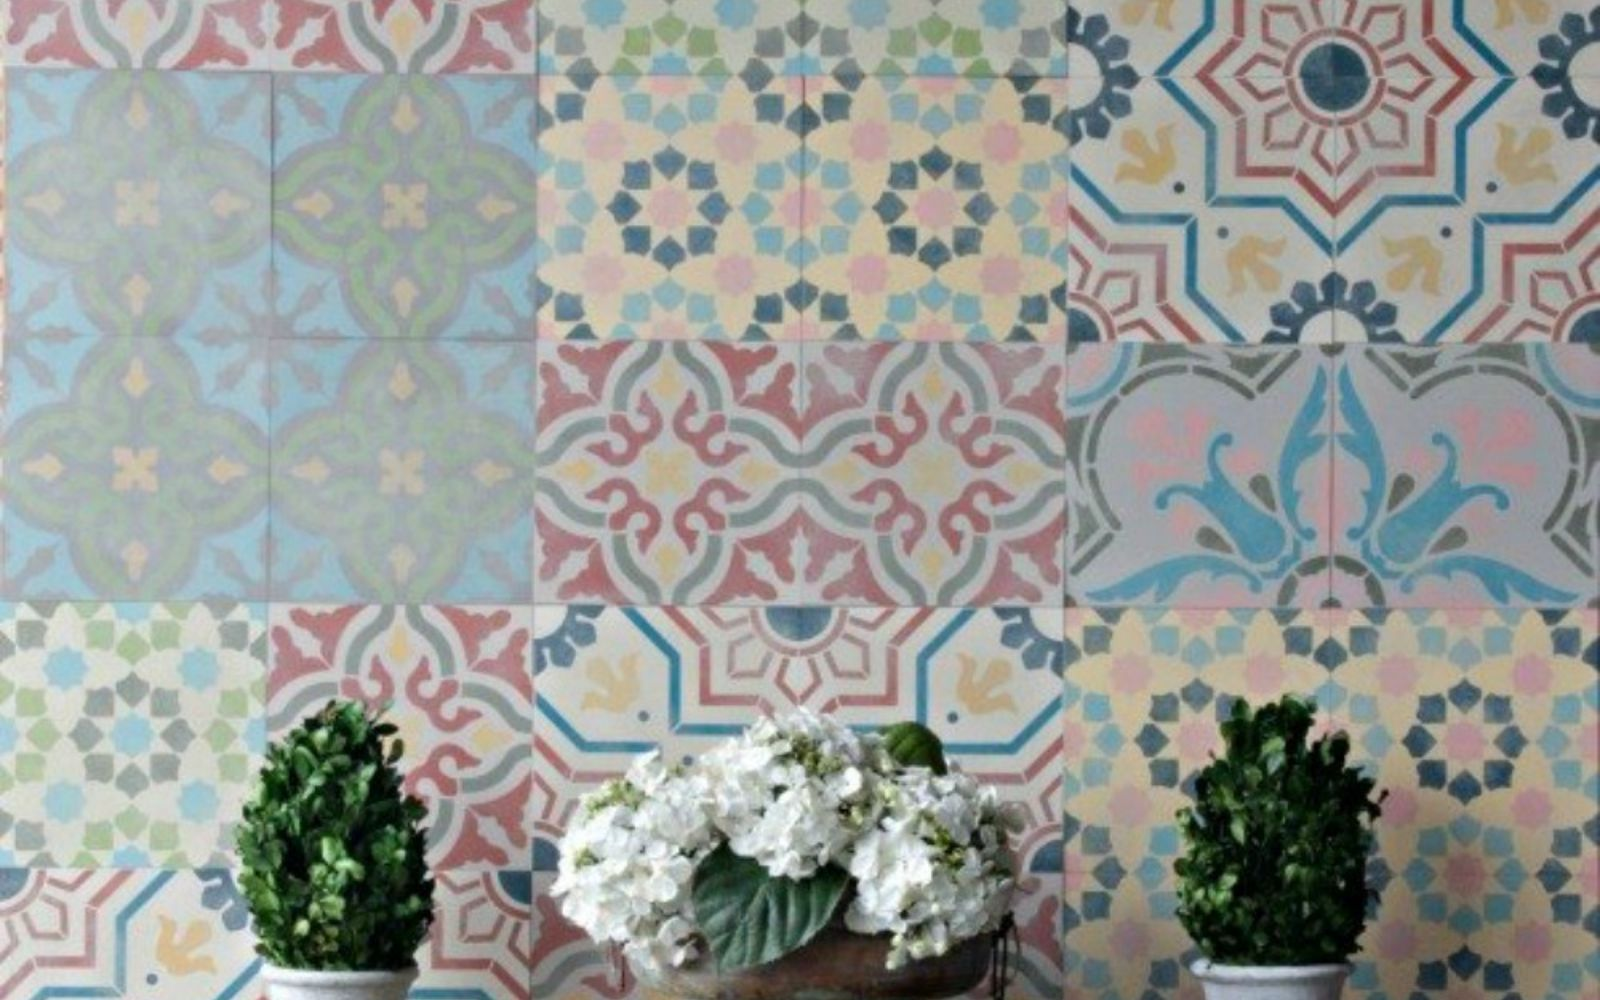 s 14 stunning ways to add cement to your home decor, concrete masonry, home decor, Map it as customized tiles on your wall